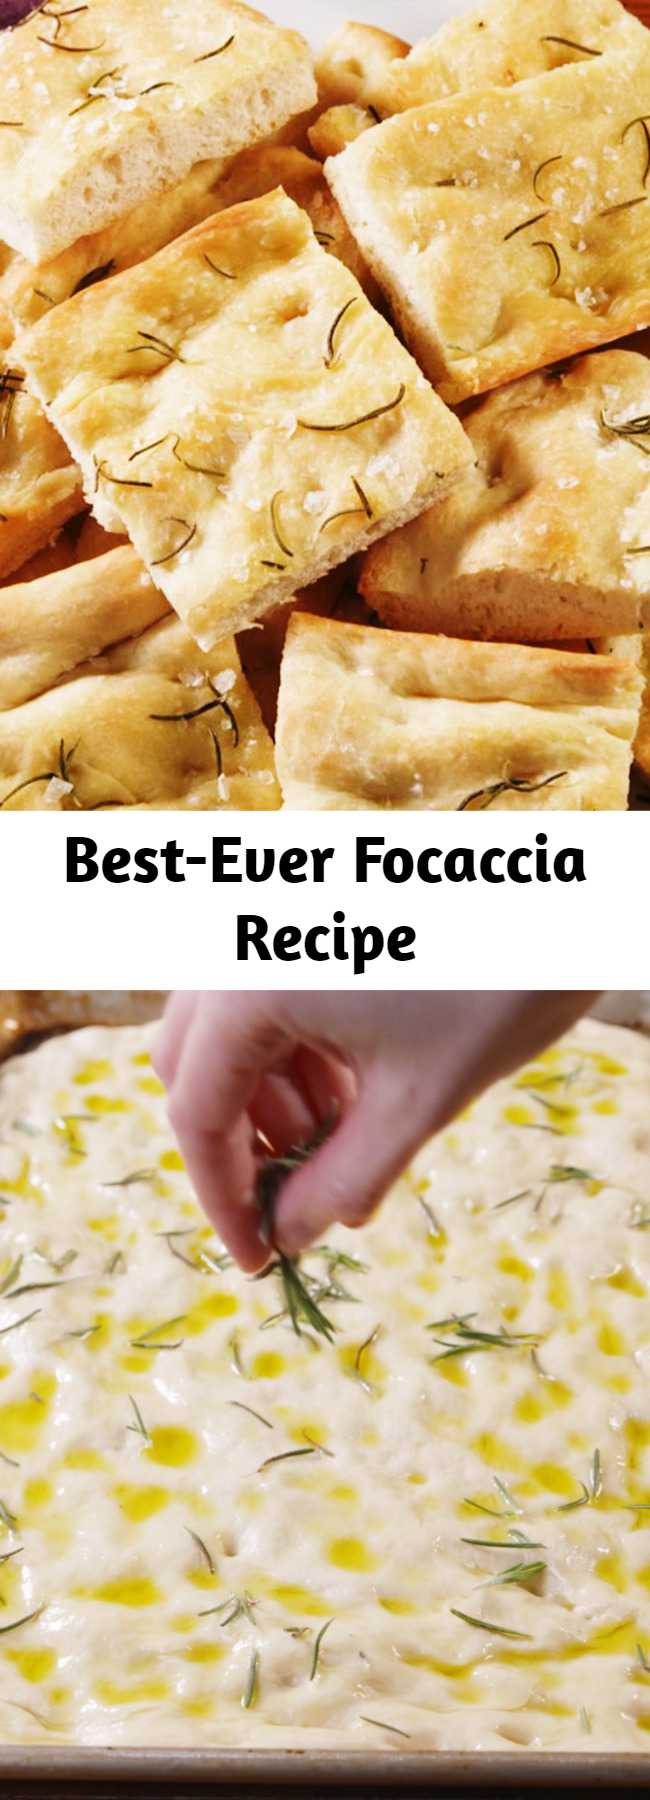 Best-Ever Focaccia Recipe - Is there anything more delicious or addicting than warm, freshly baked focaccia? If you answered no, you came to the right place. Our version is totally classic, topped with fresh rosemary leaves and crunchy sea salt. It's perfectly crispy-toasty on the outside and super soft-fluffy inside. Learn how to conquer this Italian classic with a few easy-to-follow tips. #easy #recipe #bread #focaccia #rosemary #italian #skillet #oliveoil #howto